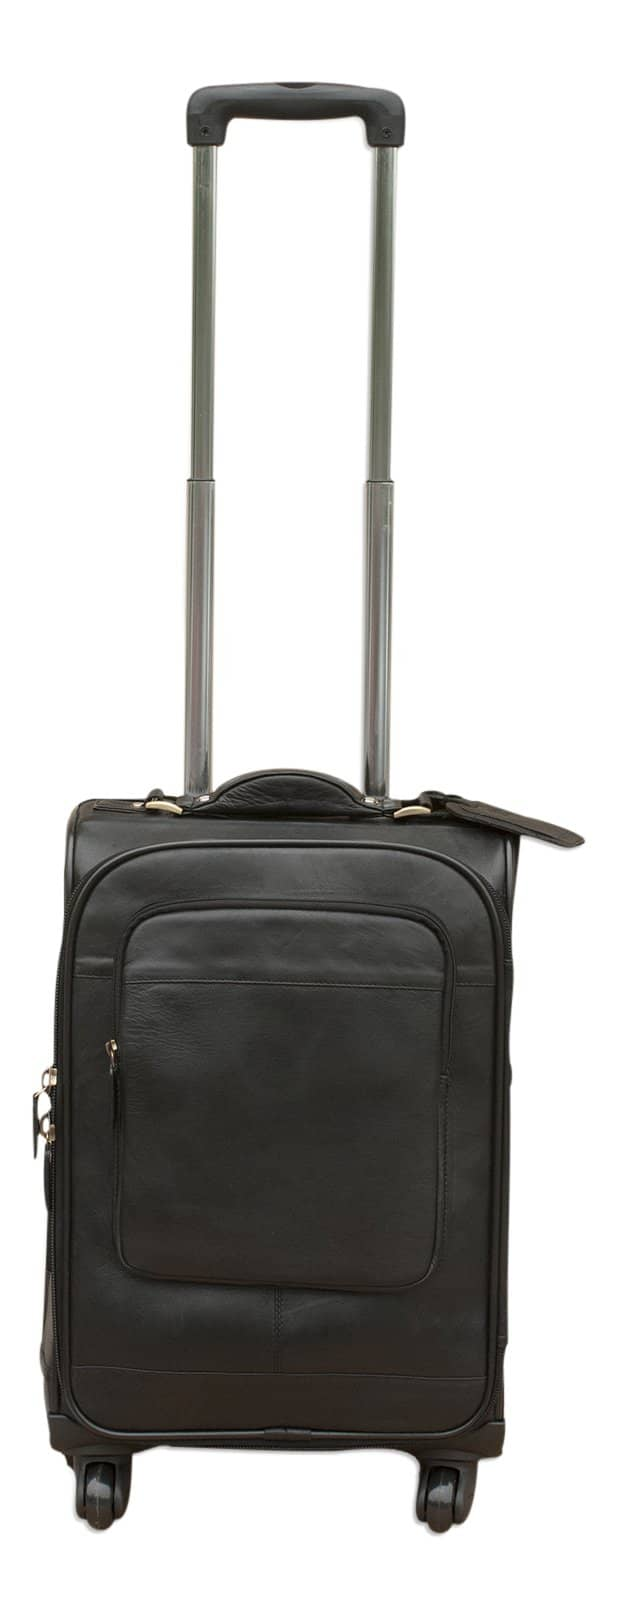 Nordvek trolley suitcase black hadl.dropboxusercontent.coe up back 101-100